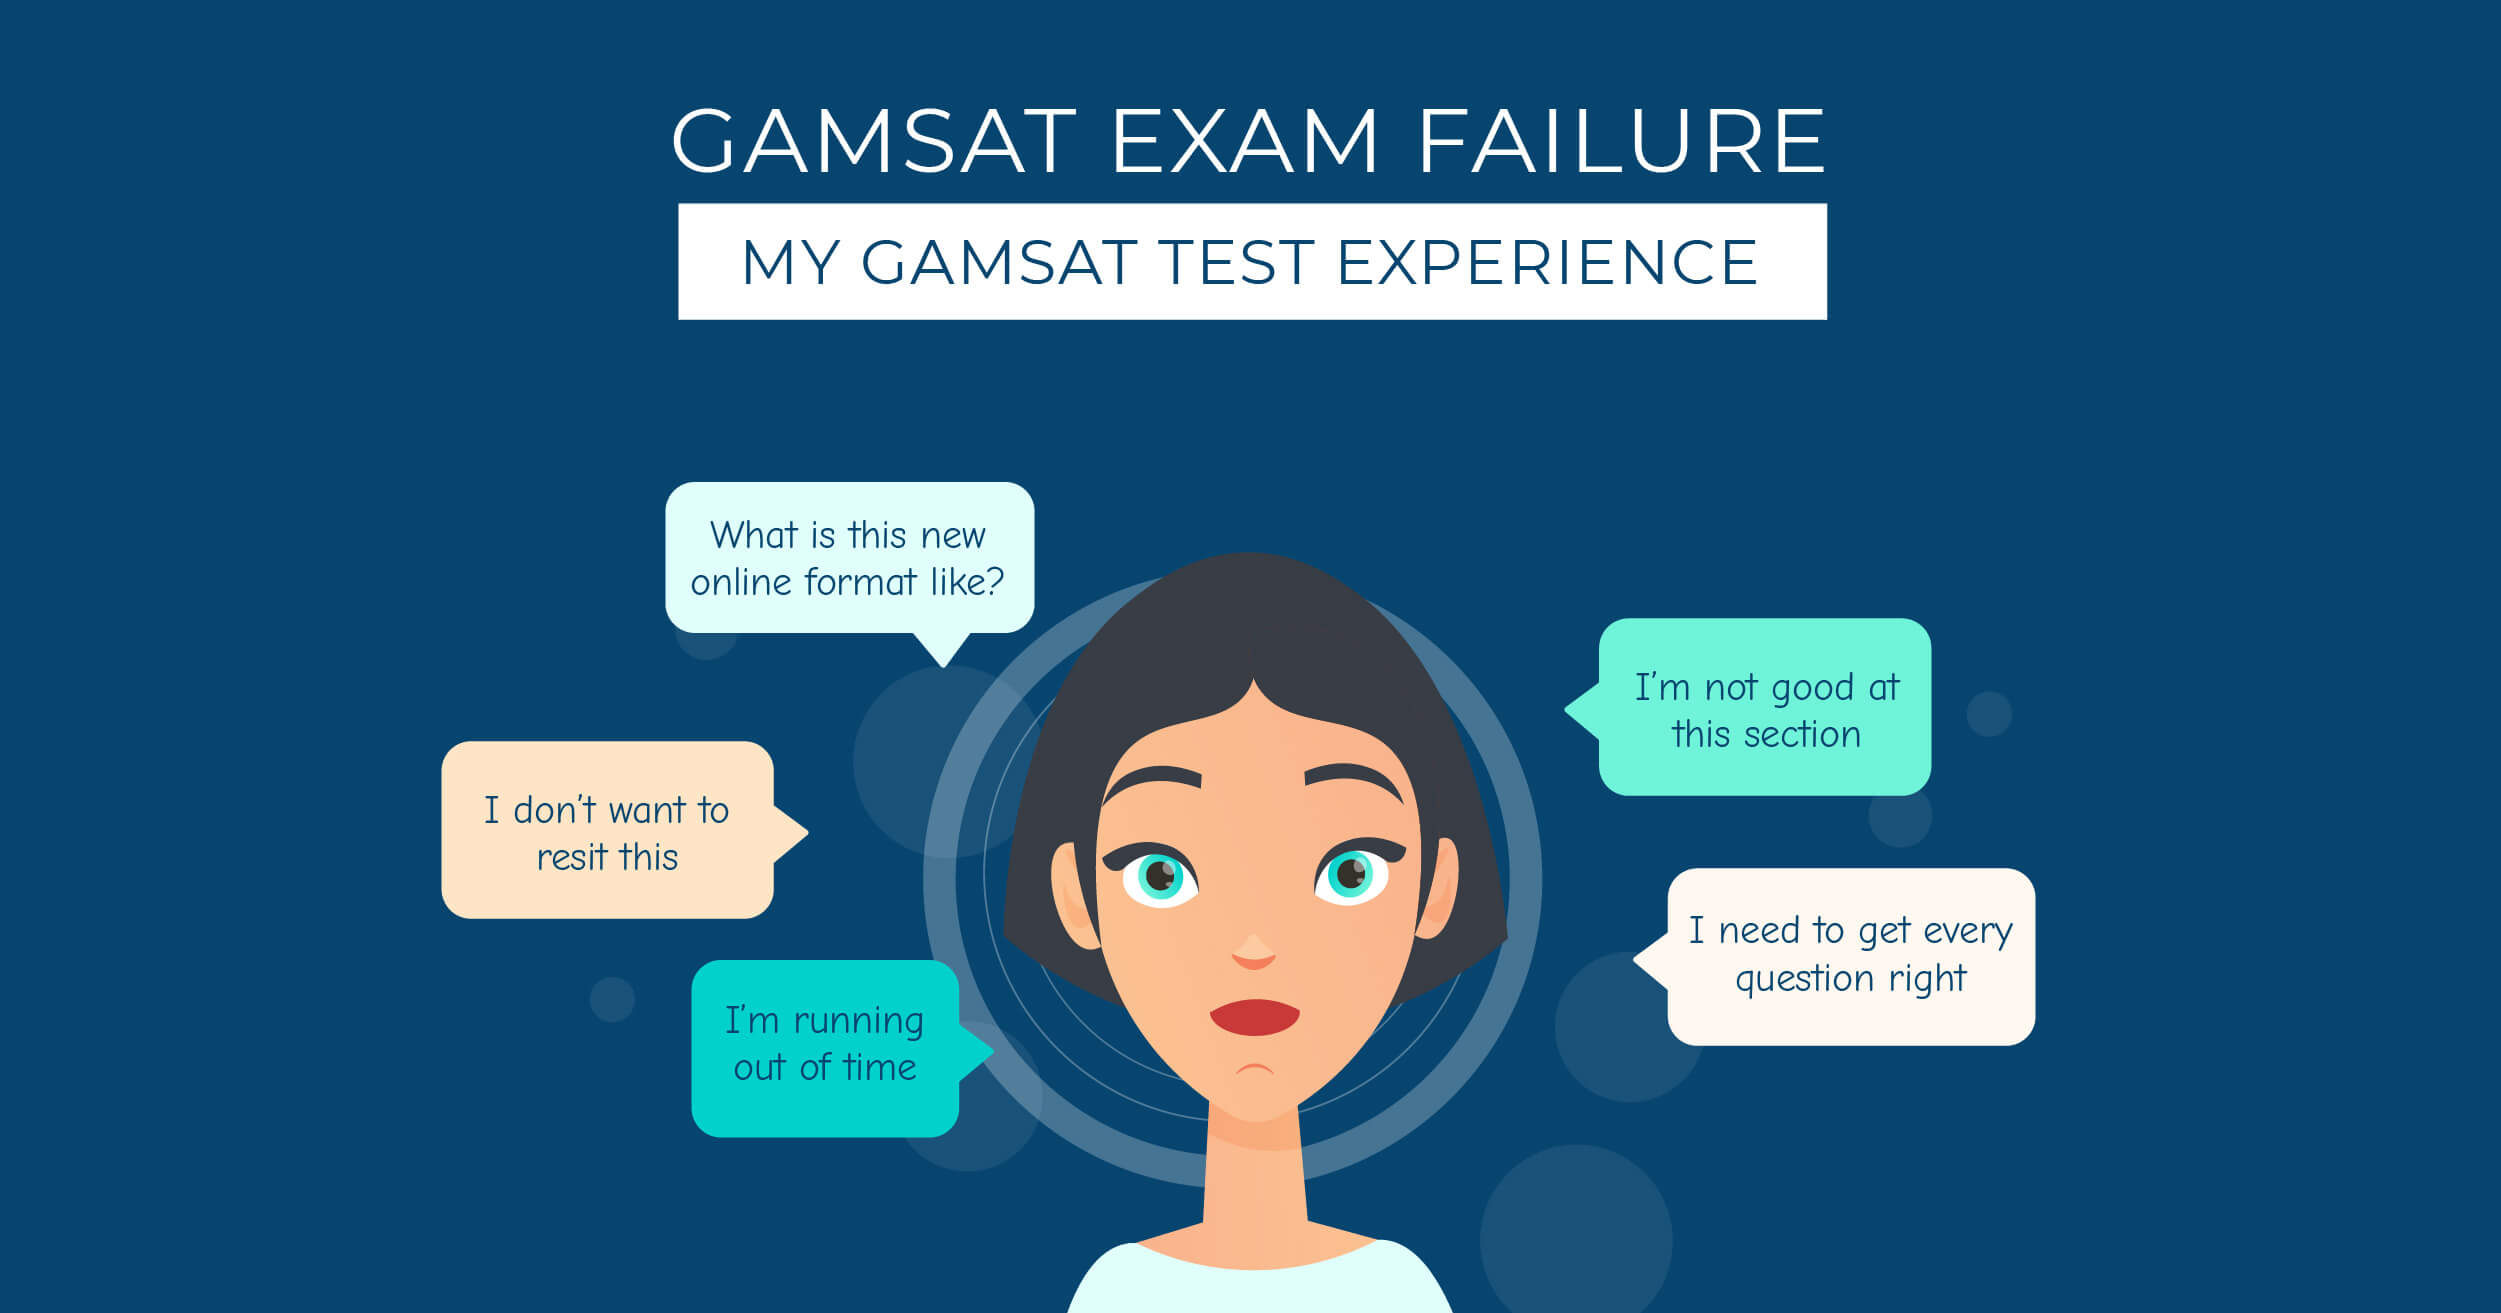 Failing at GAMSAT -  My GAMSAT Exam Experience featured image